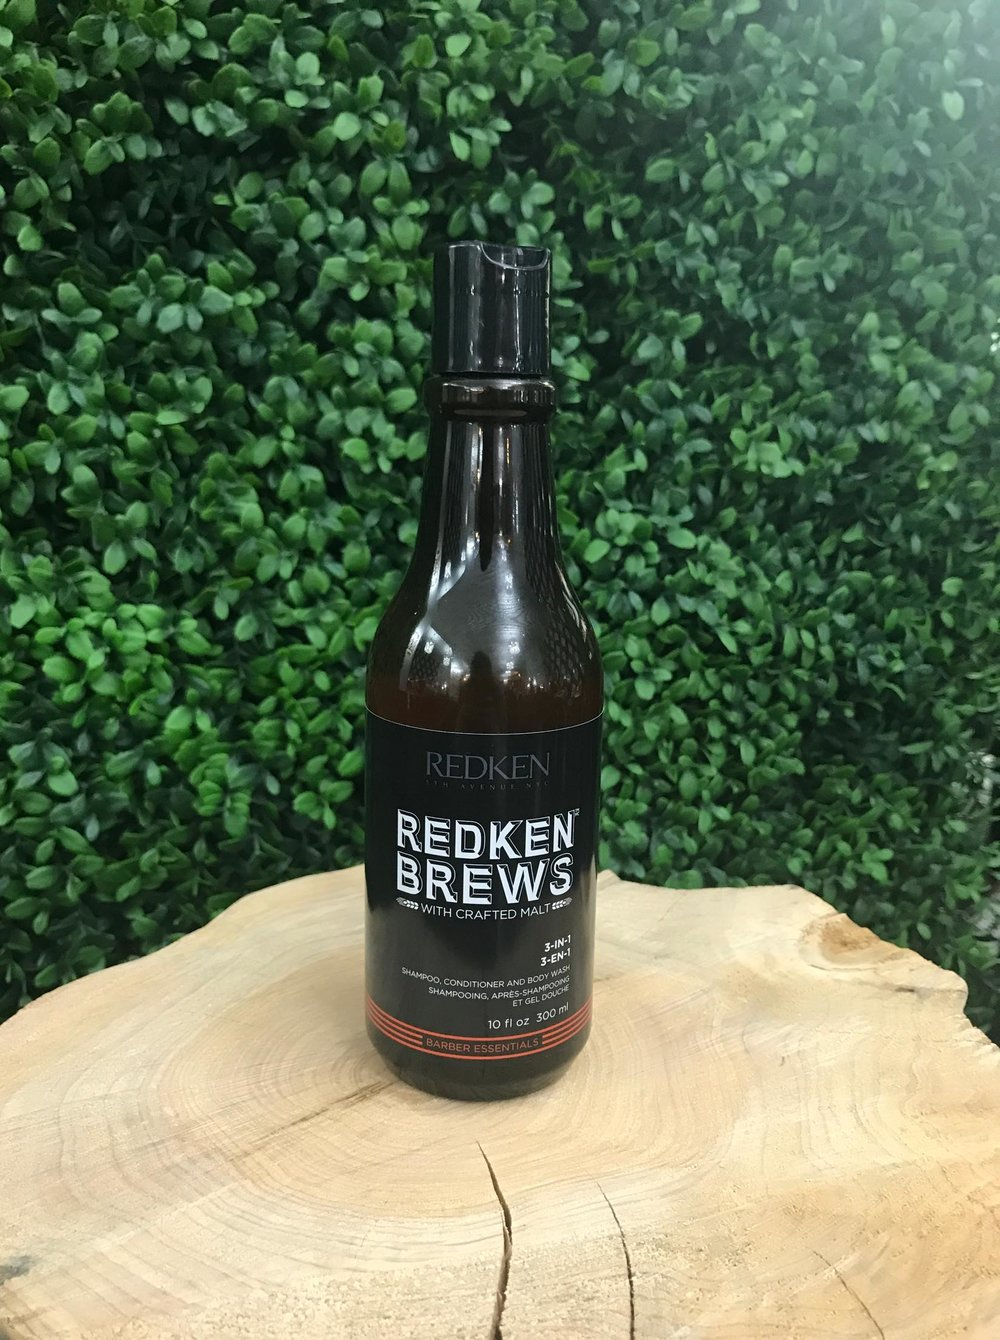 Redken Brews 3-in-1 Shampoo, Conditioner and Body Wash 300ml - $35.00